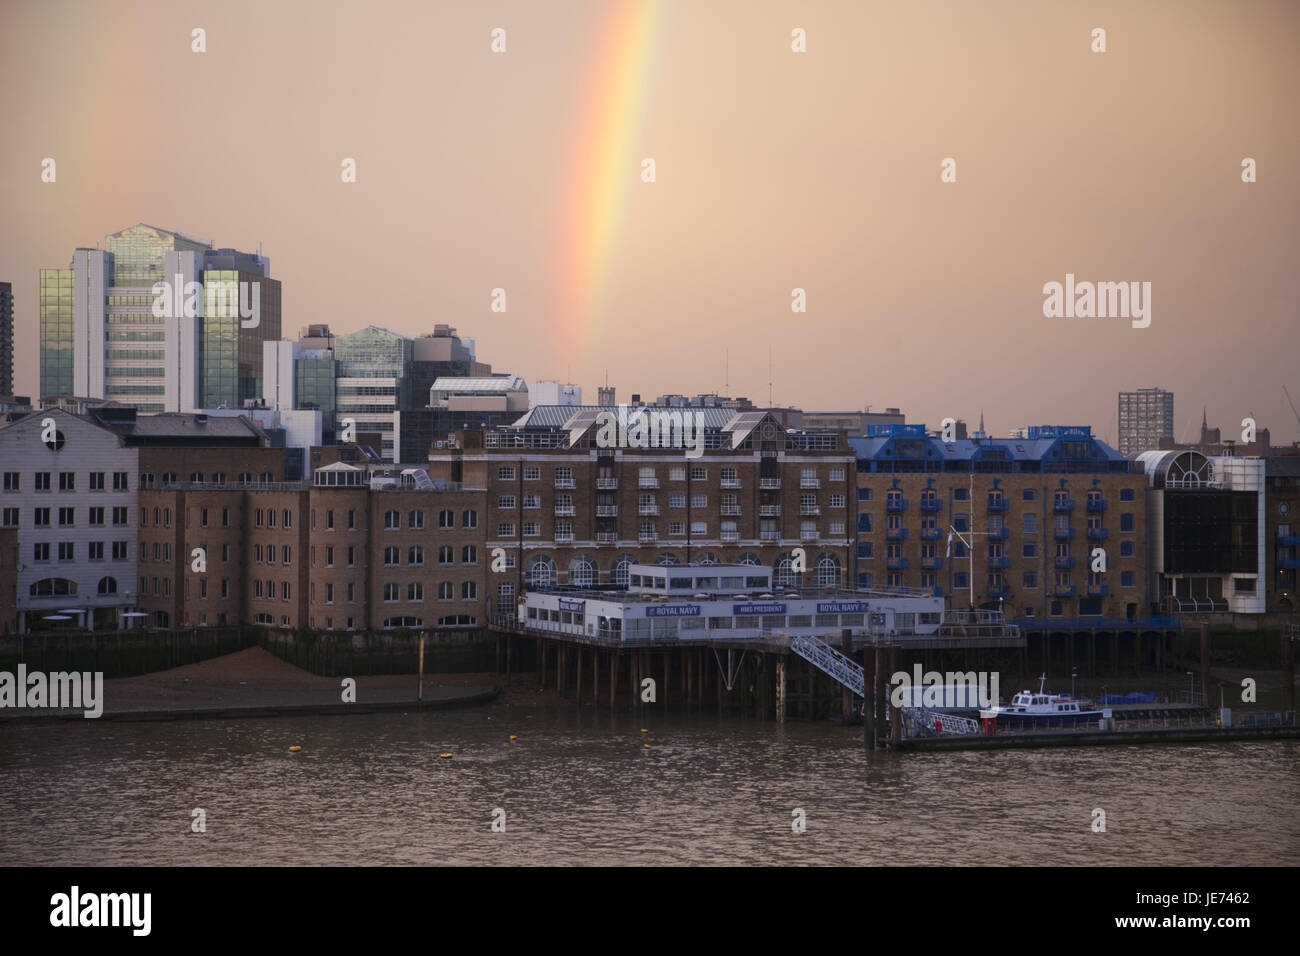 England, London, dock country, the Thames, rainbow, UK, GB, houses, buildings, financial district, business, architecture, - Stock Image